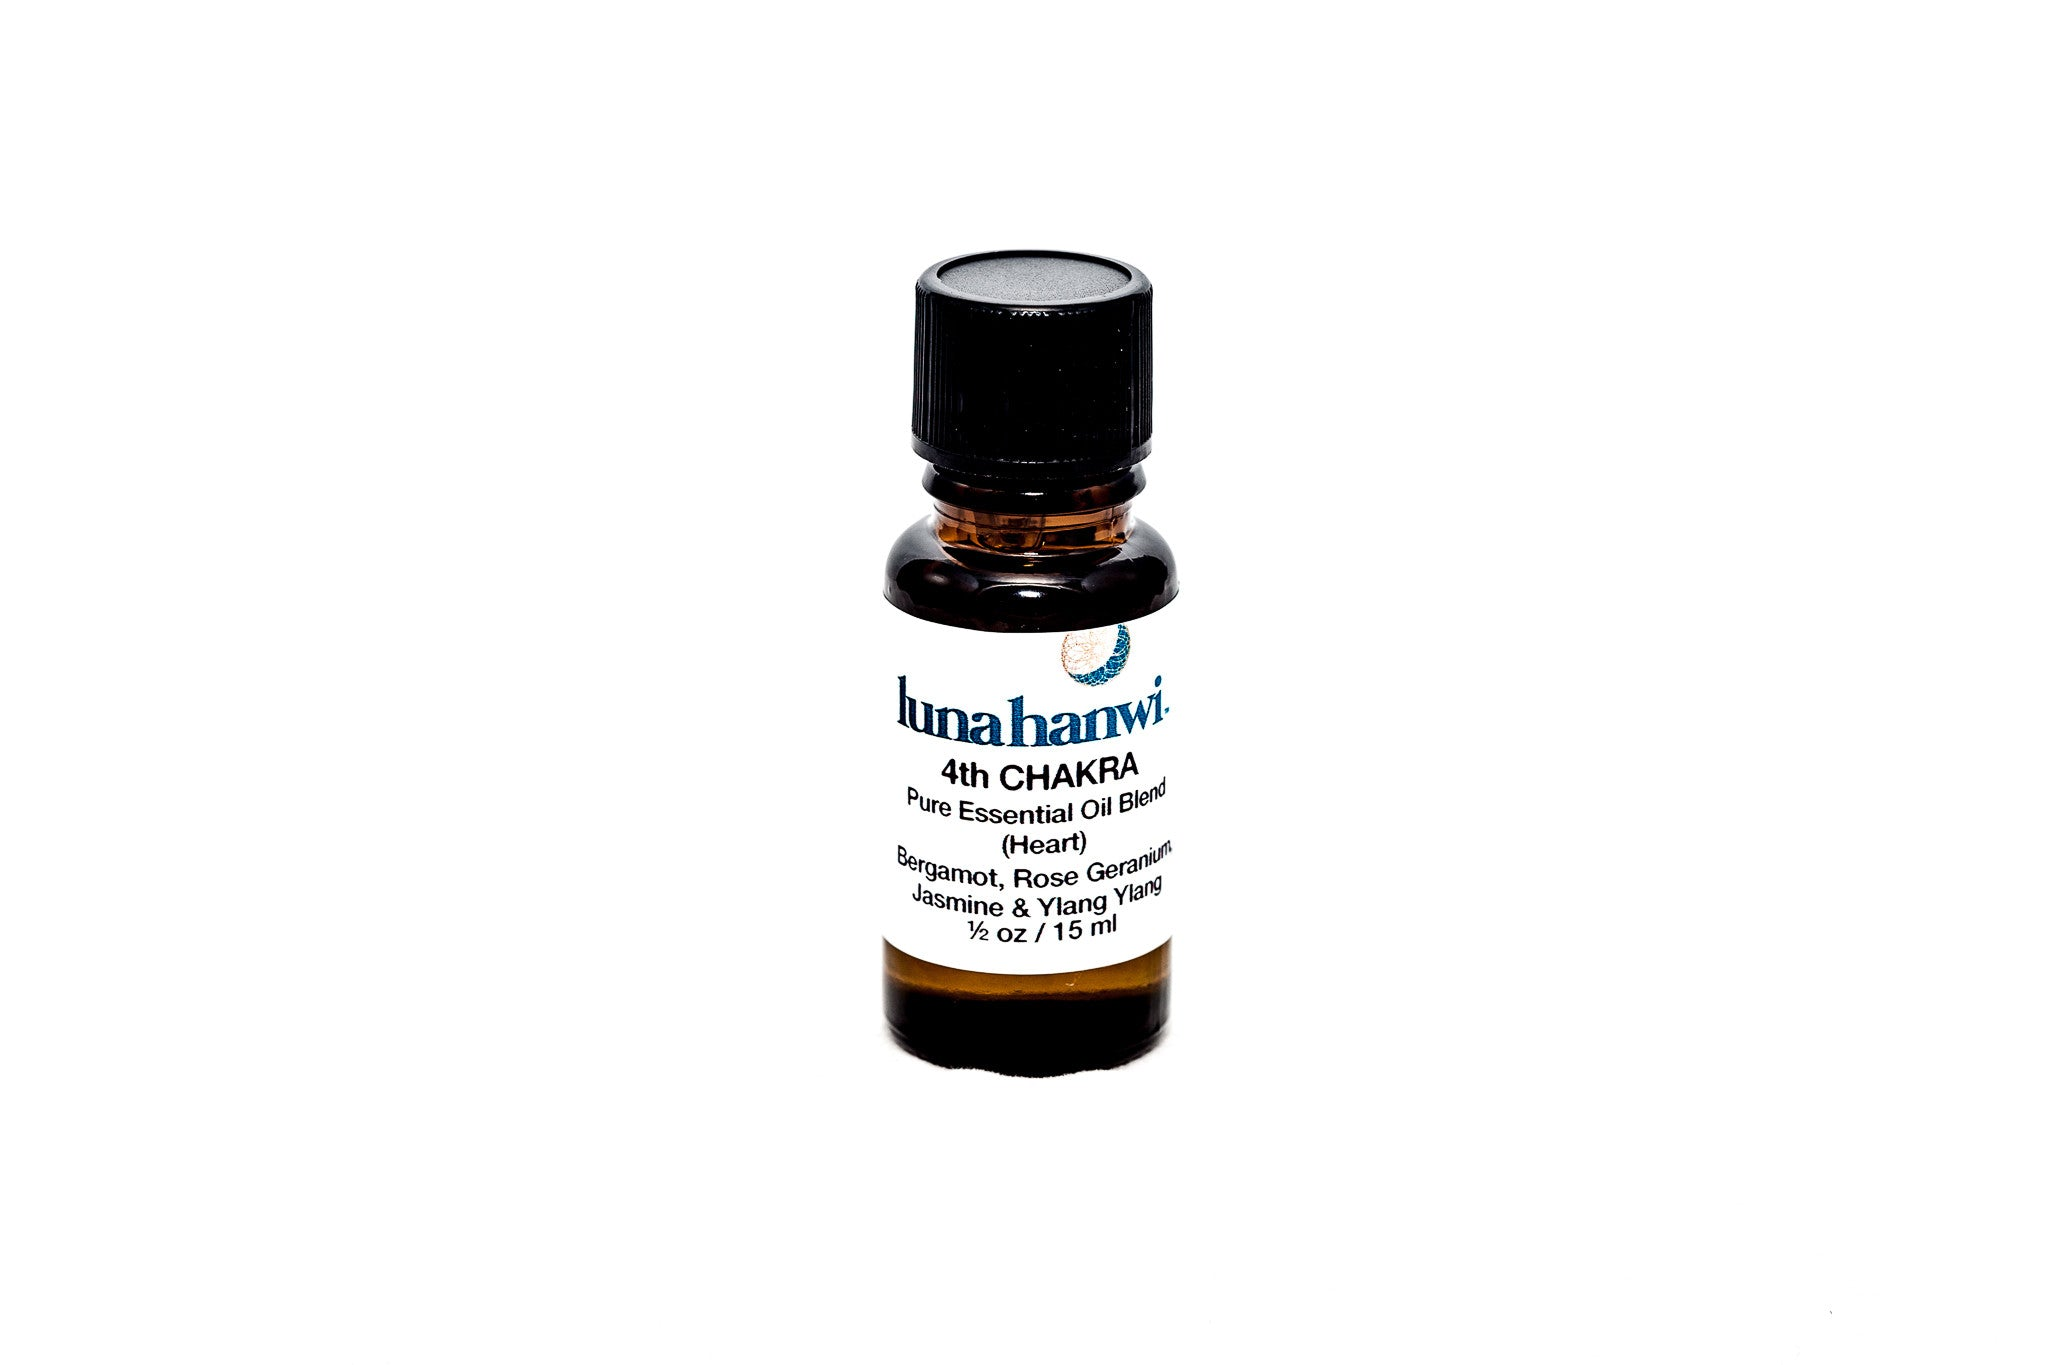 4th Chakra Essential Oil Blend (Heart) - Luna Hanwi